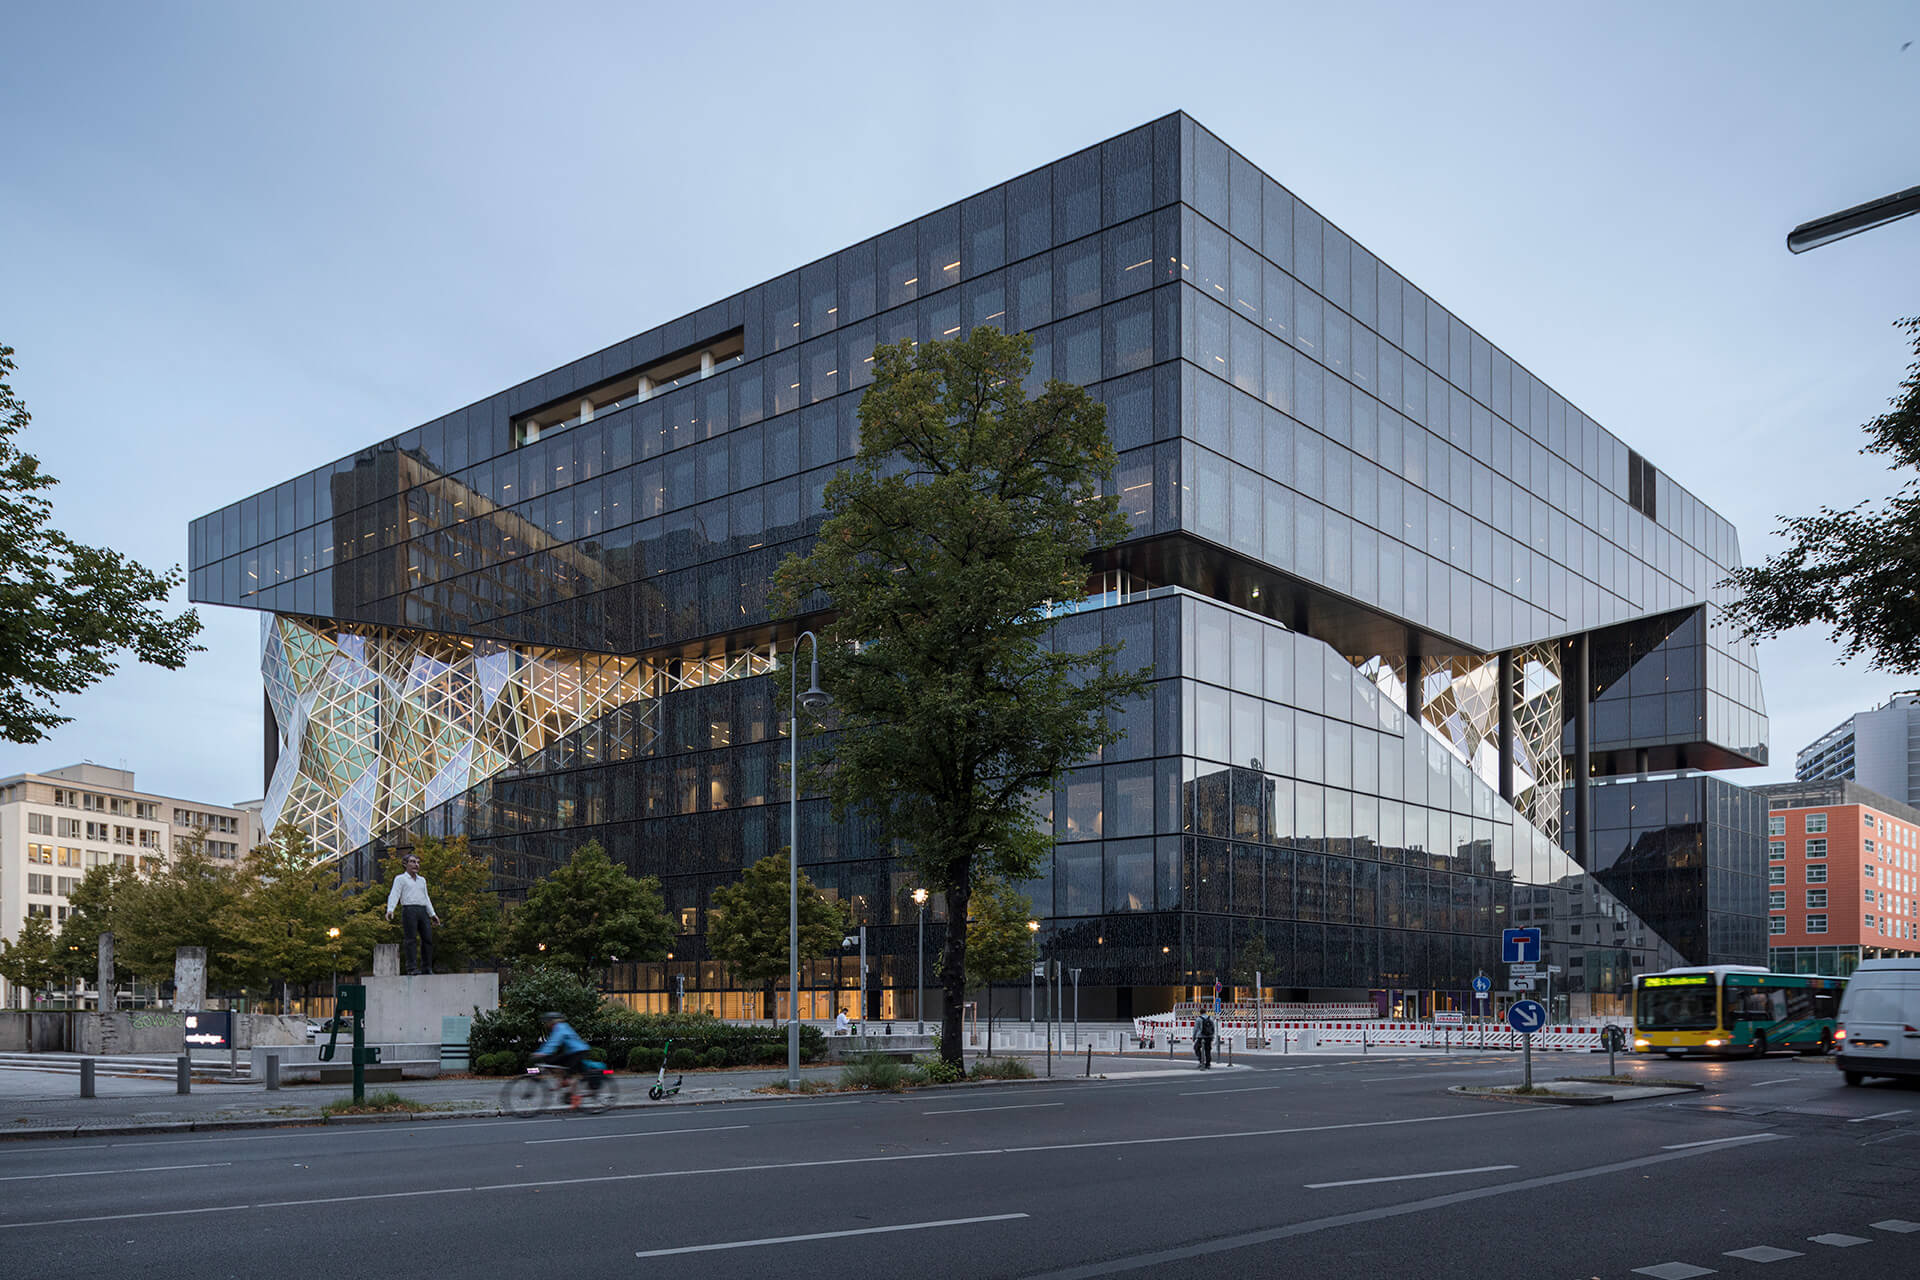 Axel Springer envisions the building as a 'powerhouse of creativity' | OMA | Berlin | STIRworld